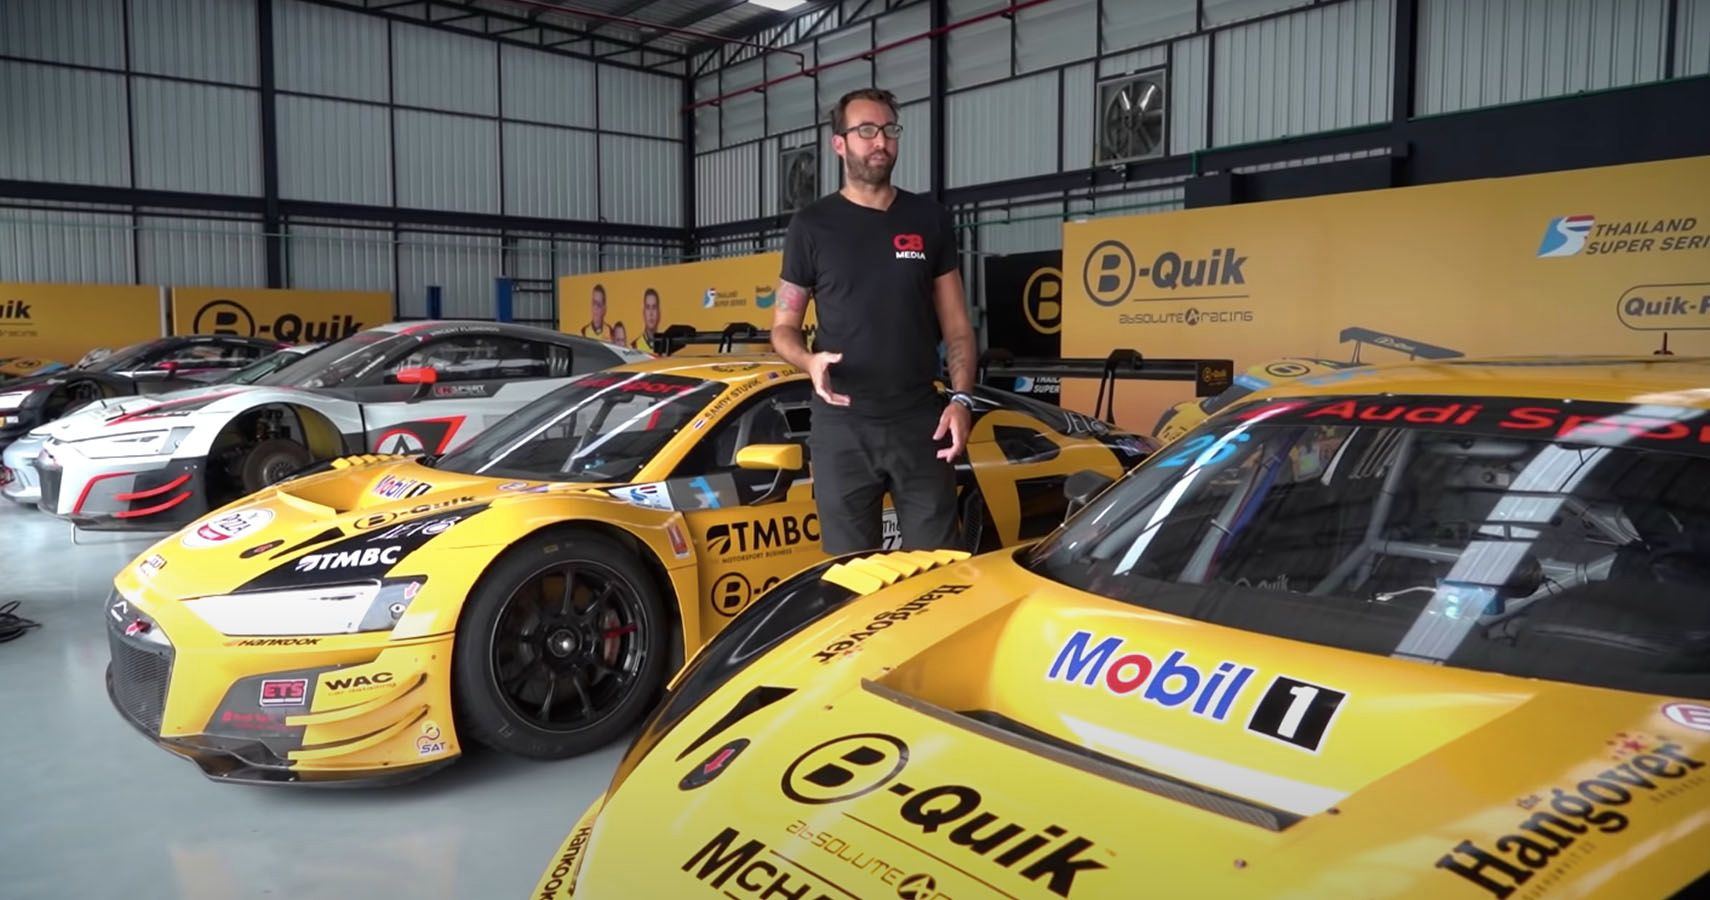 Check Out This Fleet Of Audi R8 Racers In Thailand   HotCars